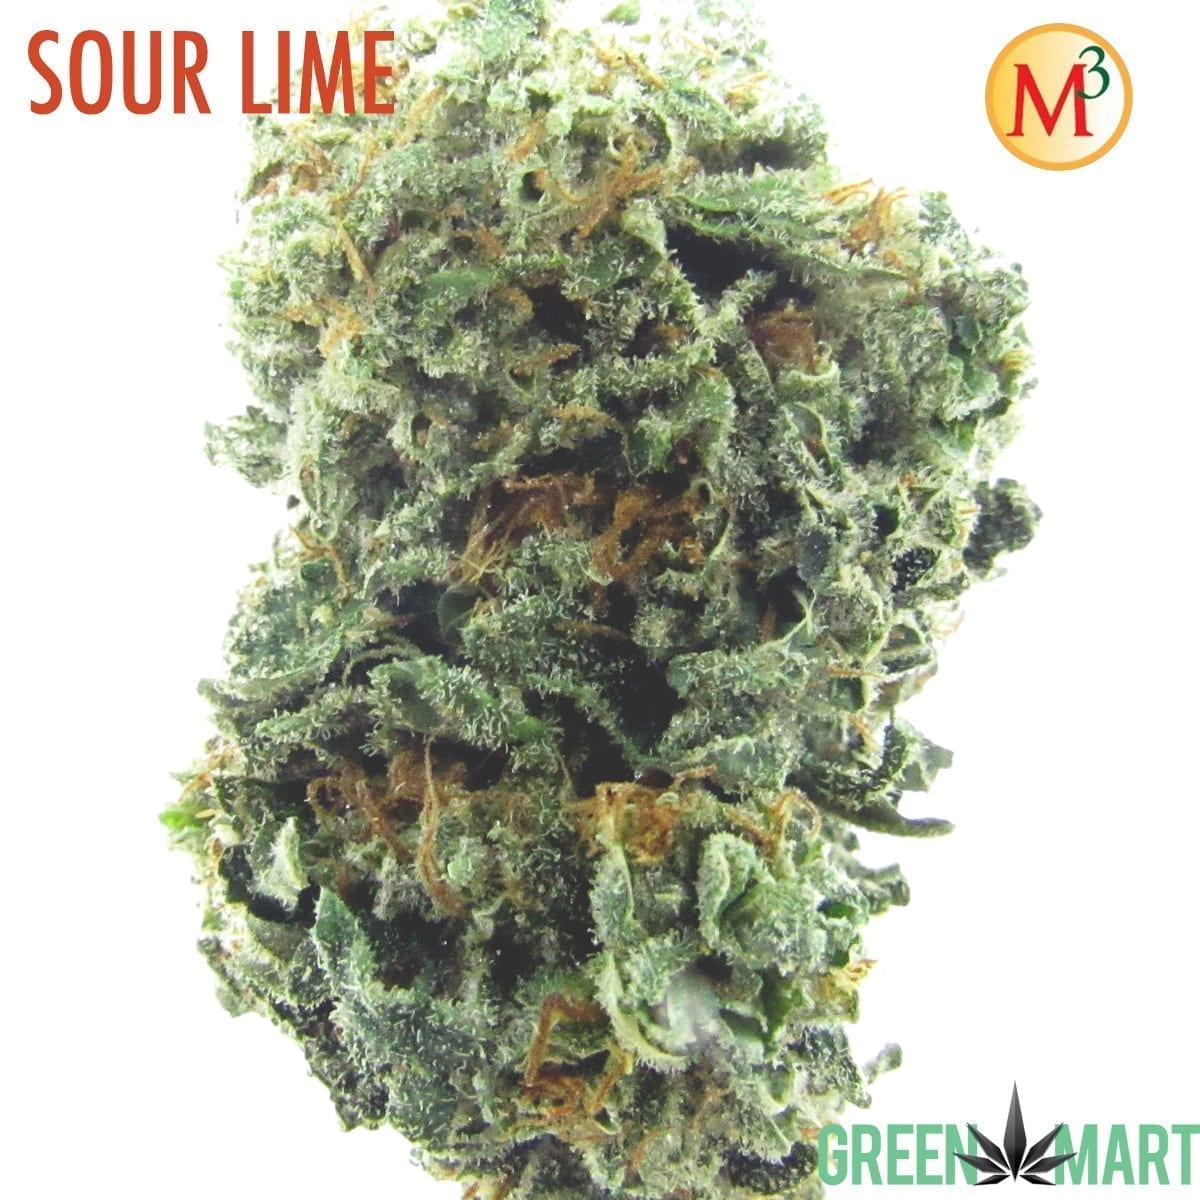 Sour Lime by Mother Magnolia Medicinals